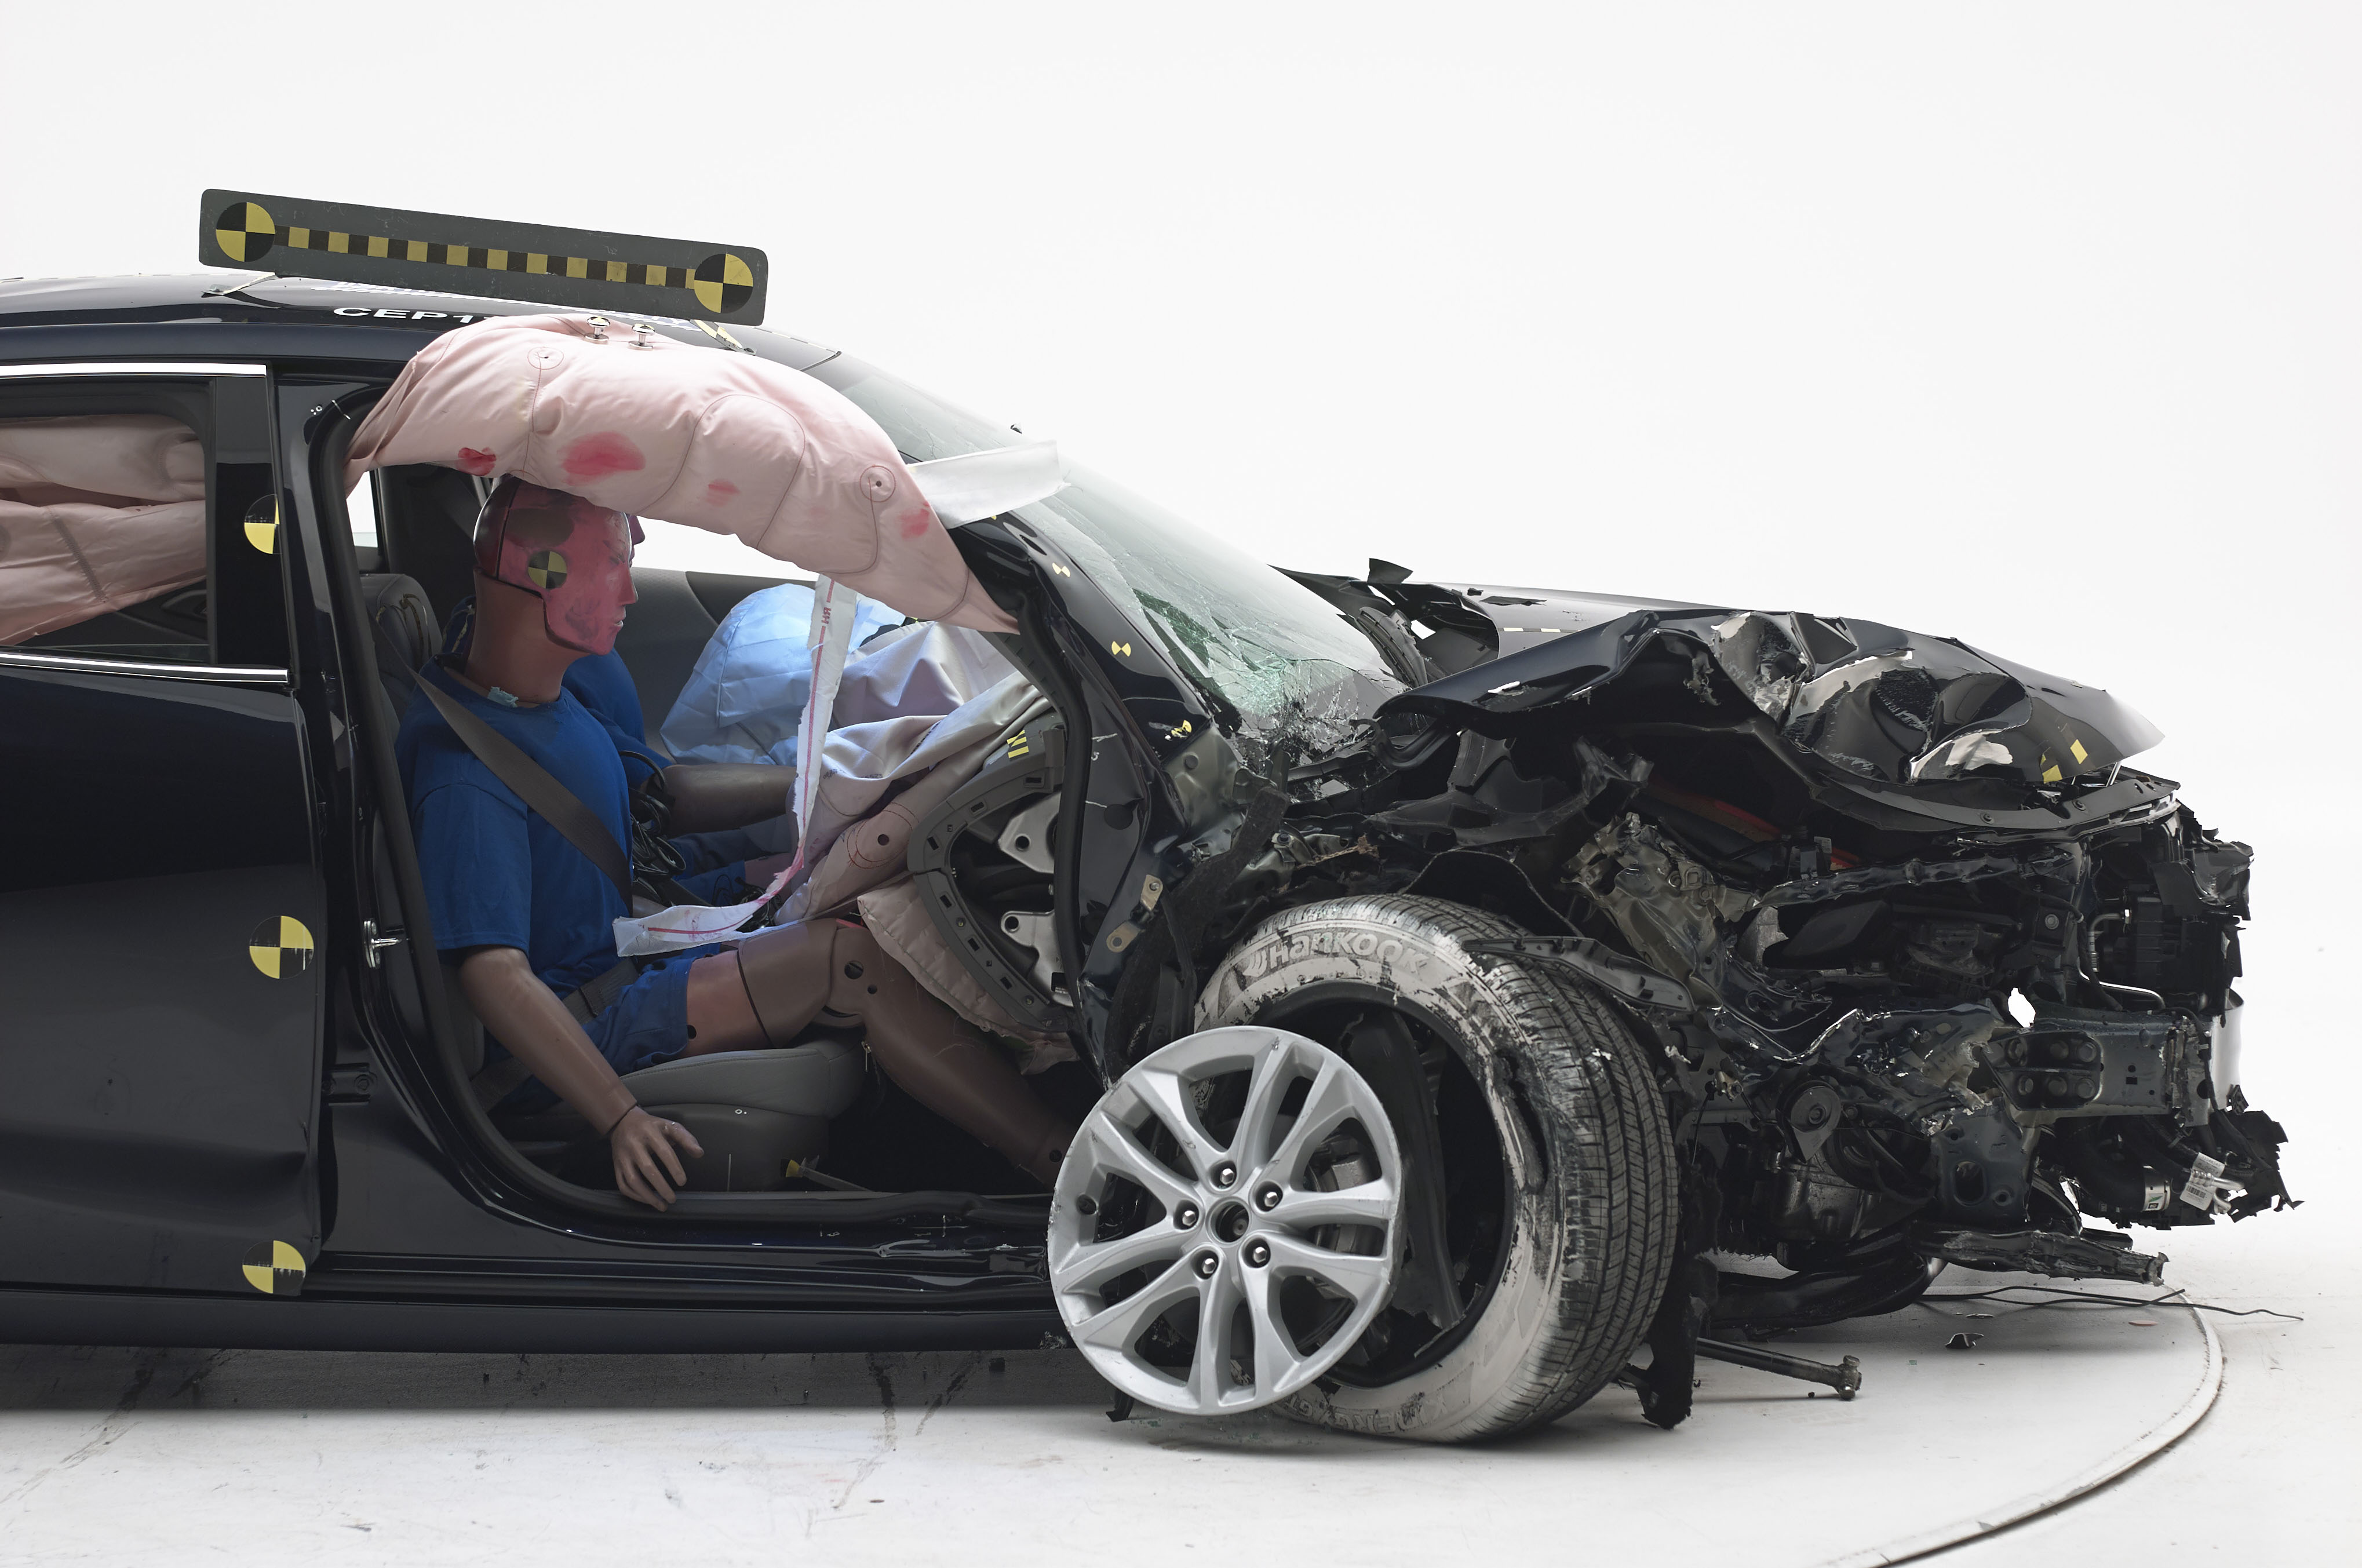 New Crash Test to Check Effectiveness of Passenger-side Airbags